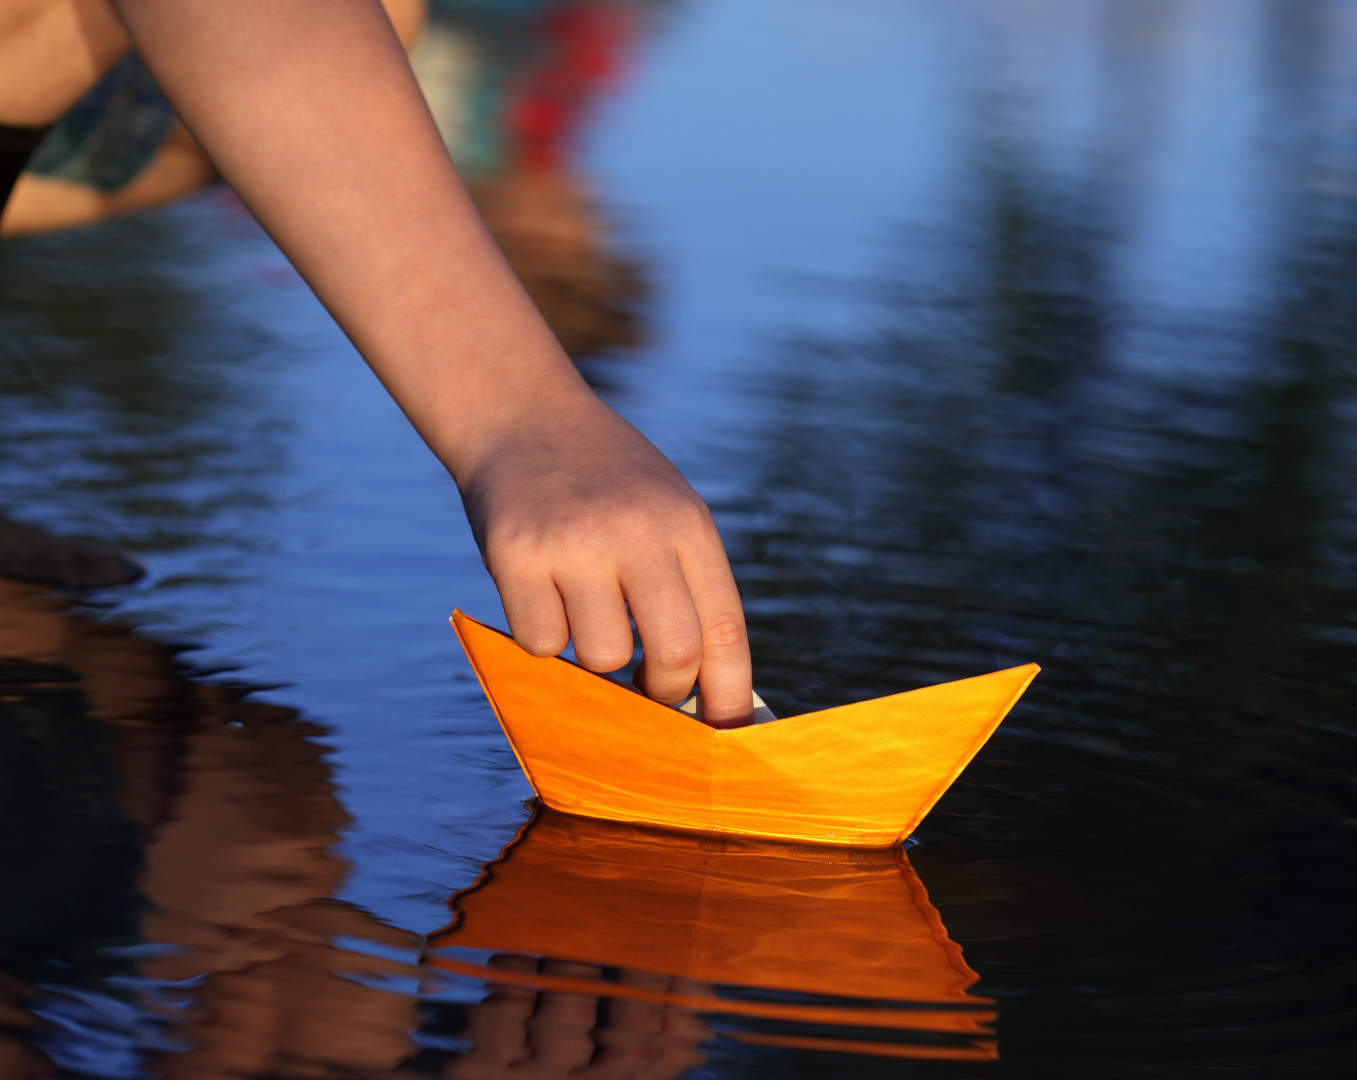 Paper boat launch